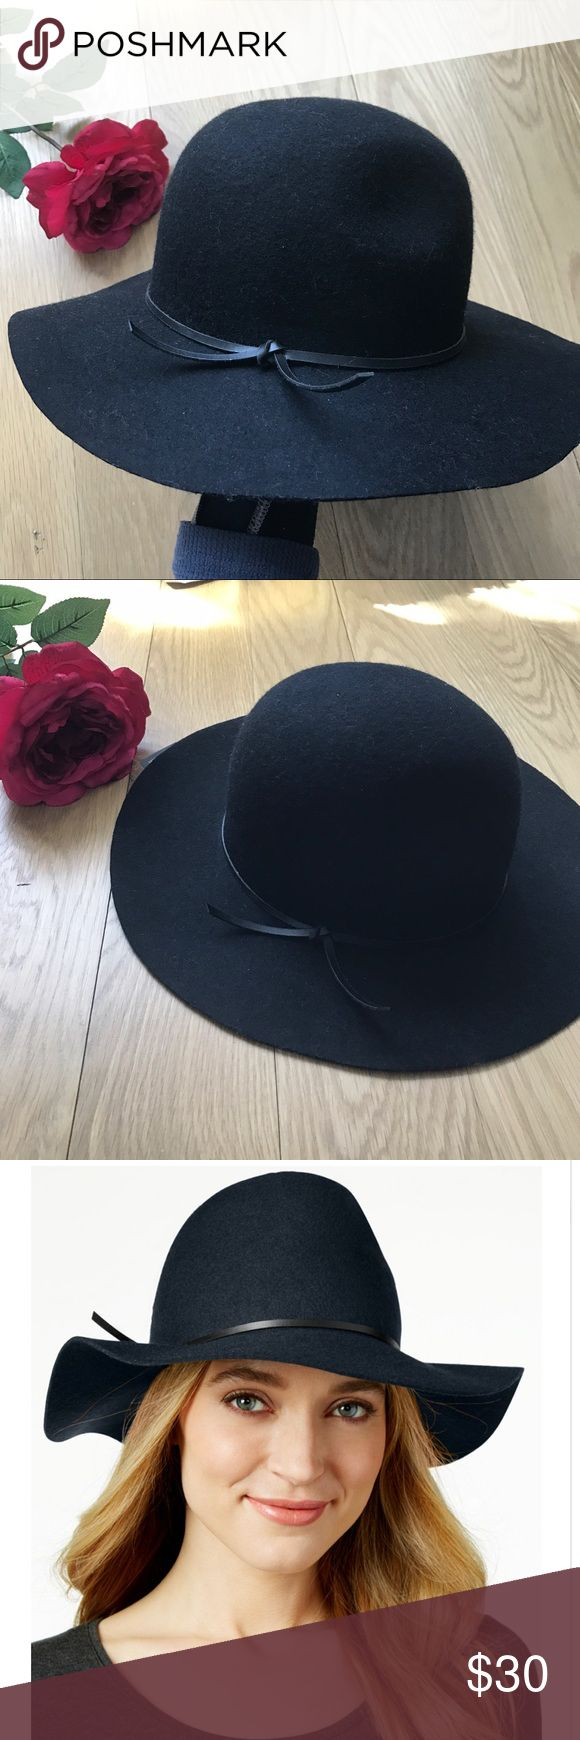 🆕Nine west Black floppy felt hat Pinched crown. Nine West's on-trend floppy hat brings an effortlessly cool vibe to casual outfits. One size fits all Wool Spot clean only. Model wears slightly different color in same exact style. Nine West Accessories Hats